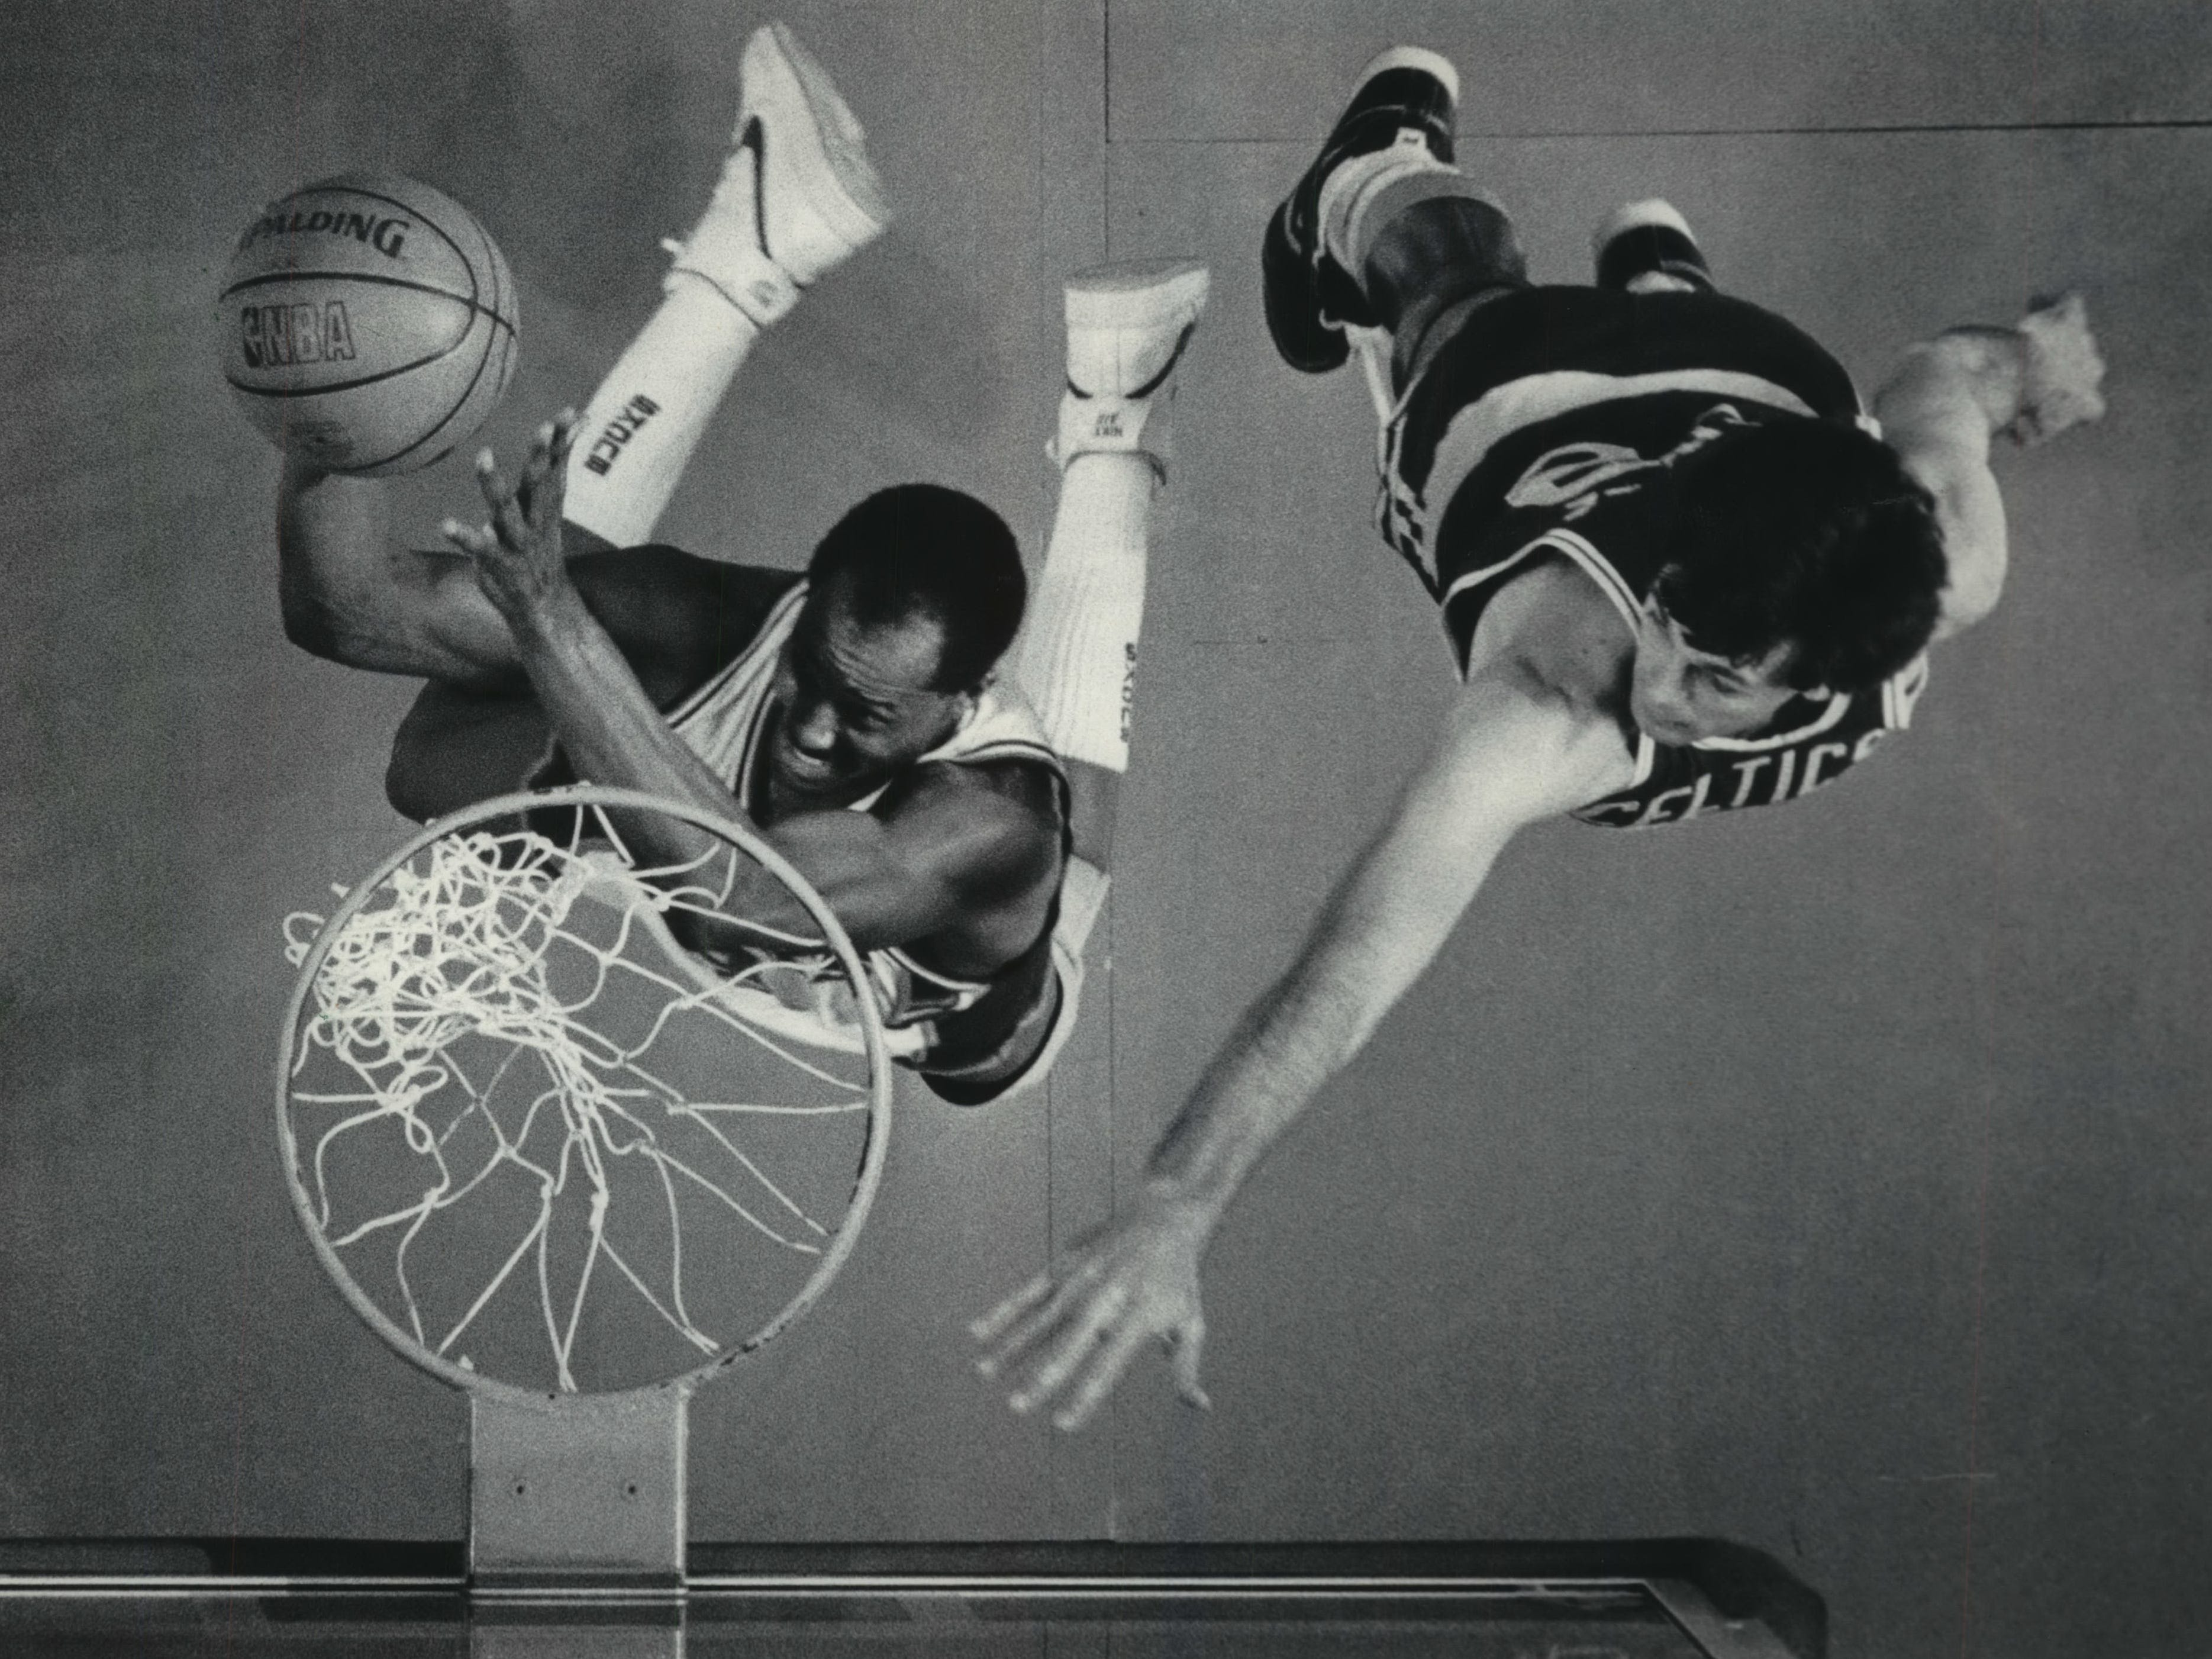 1986: Bucks forward Sidney Moncrief maneuvers past Boston Celtic Kevin McHale for a layup during Game 3 of the Eastern Conference championship series at the Milwaukee Arena on May 17, 1986. Boston beat Milwaukee, 111-107. The Celtics ended up sweeping the Bucks in the series, 4-0.This photo was published in the May 18, 1986, Milwaukee Journal.